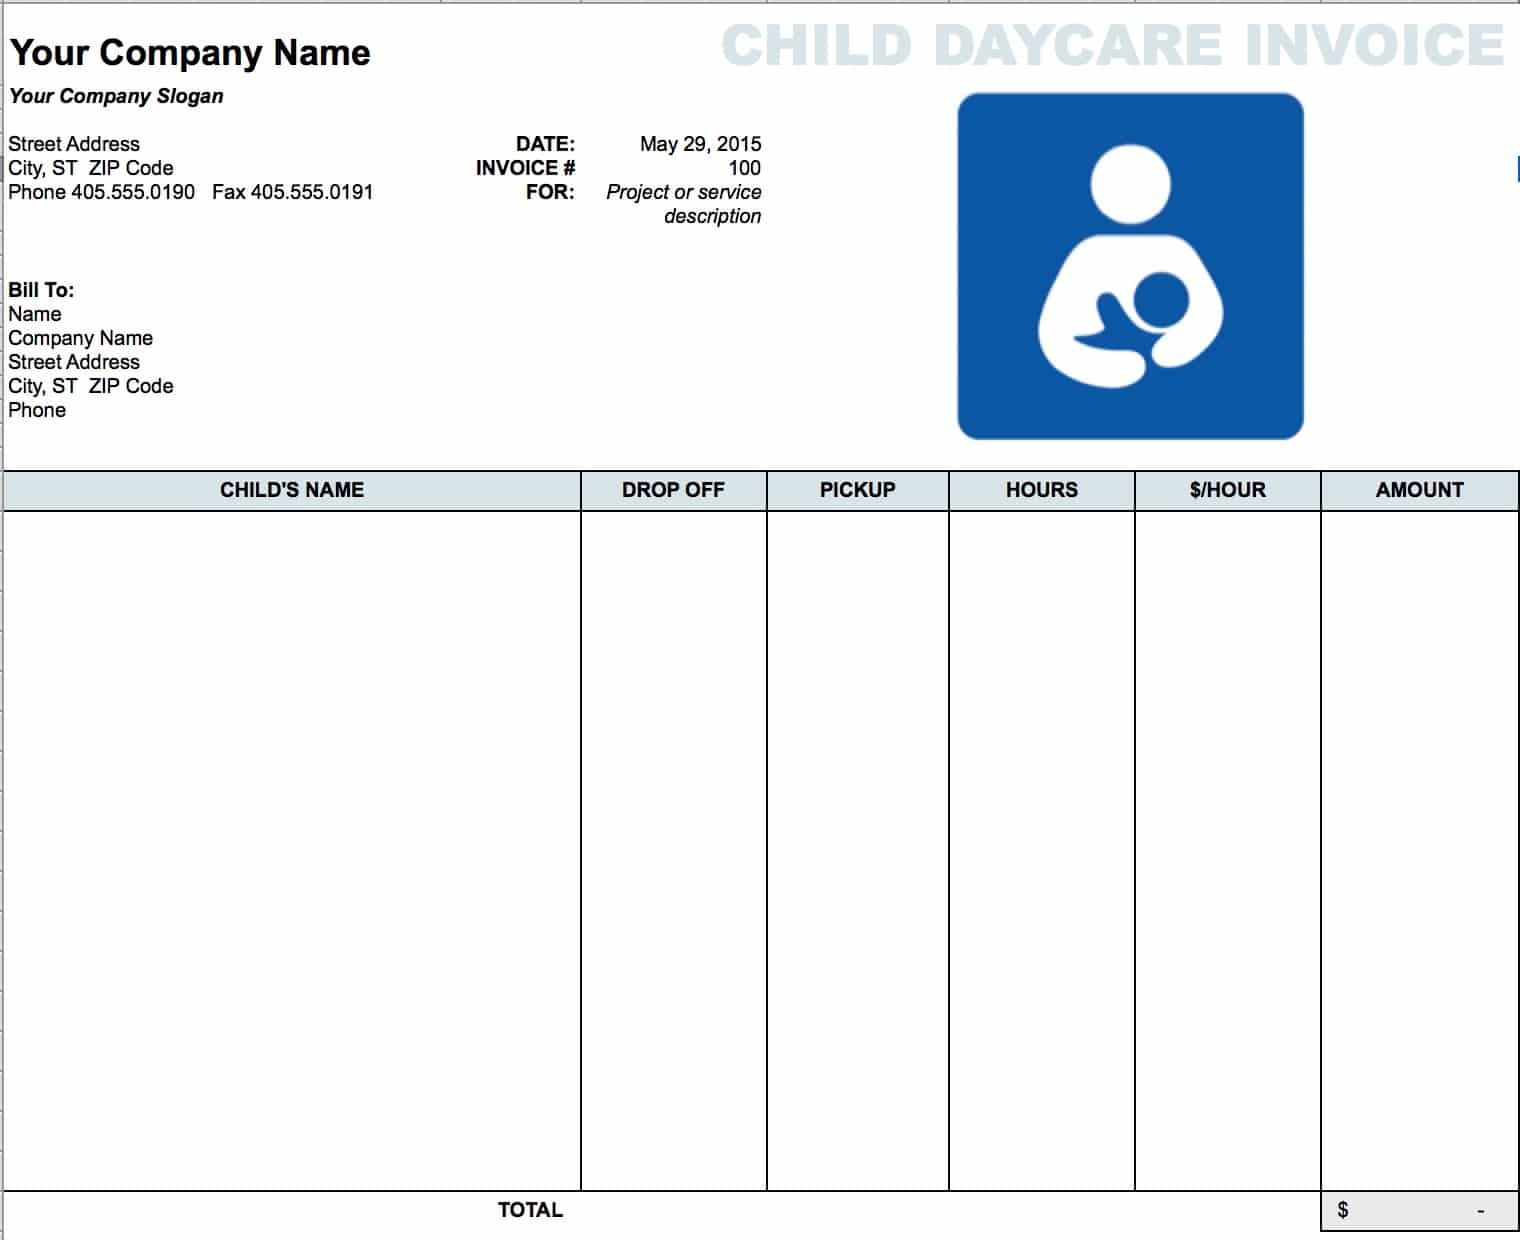 Free Daycare Child Invoice Template Excel PDF Word Doc - Blank invoice word document for service business